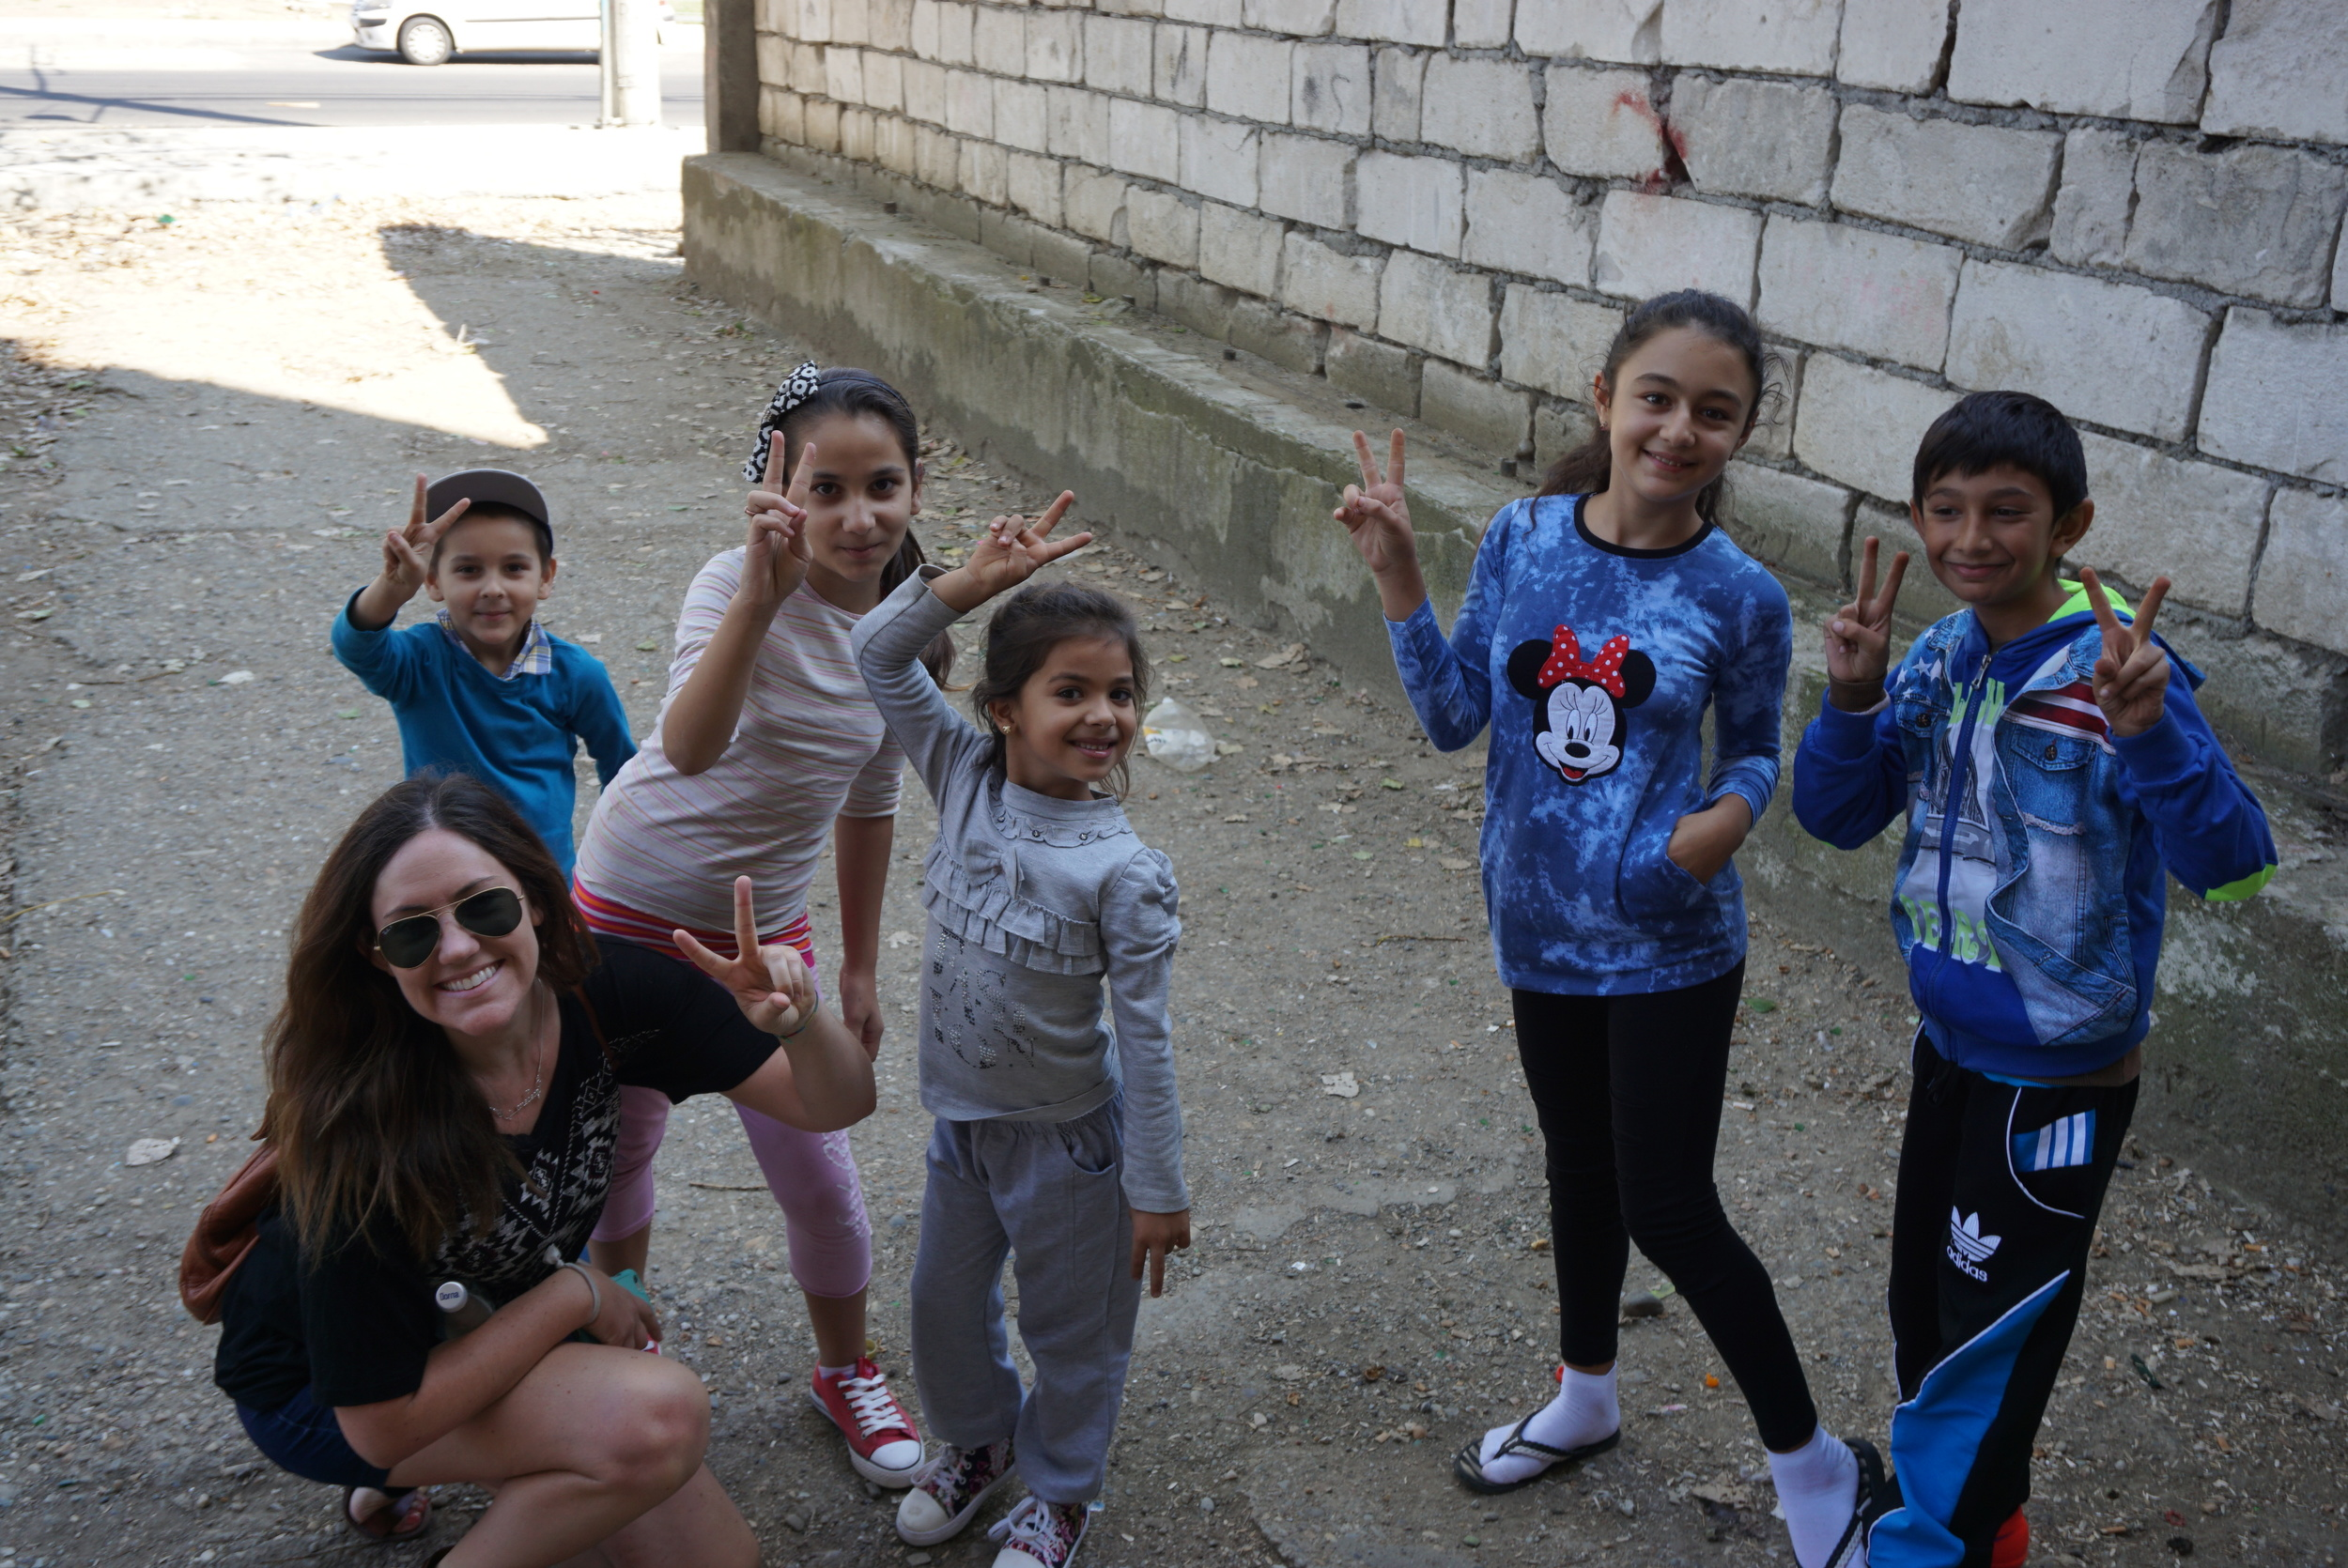 There was a Roma slum in the news a few years back because the Mayor put up a wall that separated them from the surrounding neighborhood.  We visited and loved the children we saw!